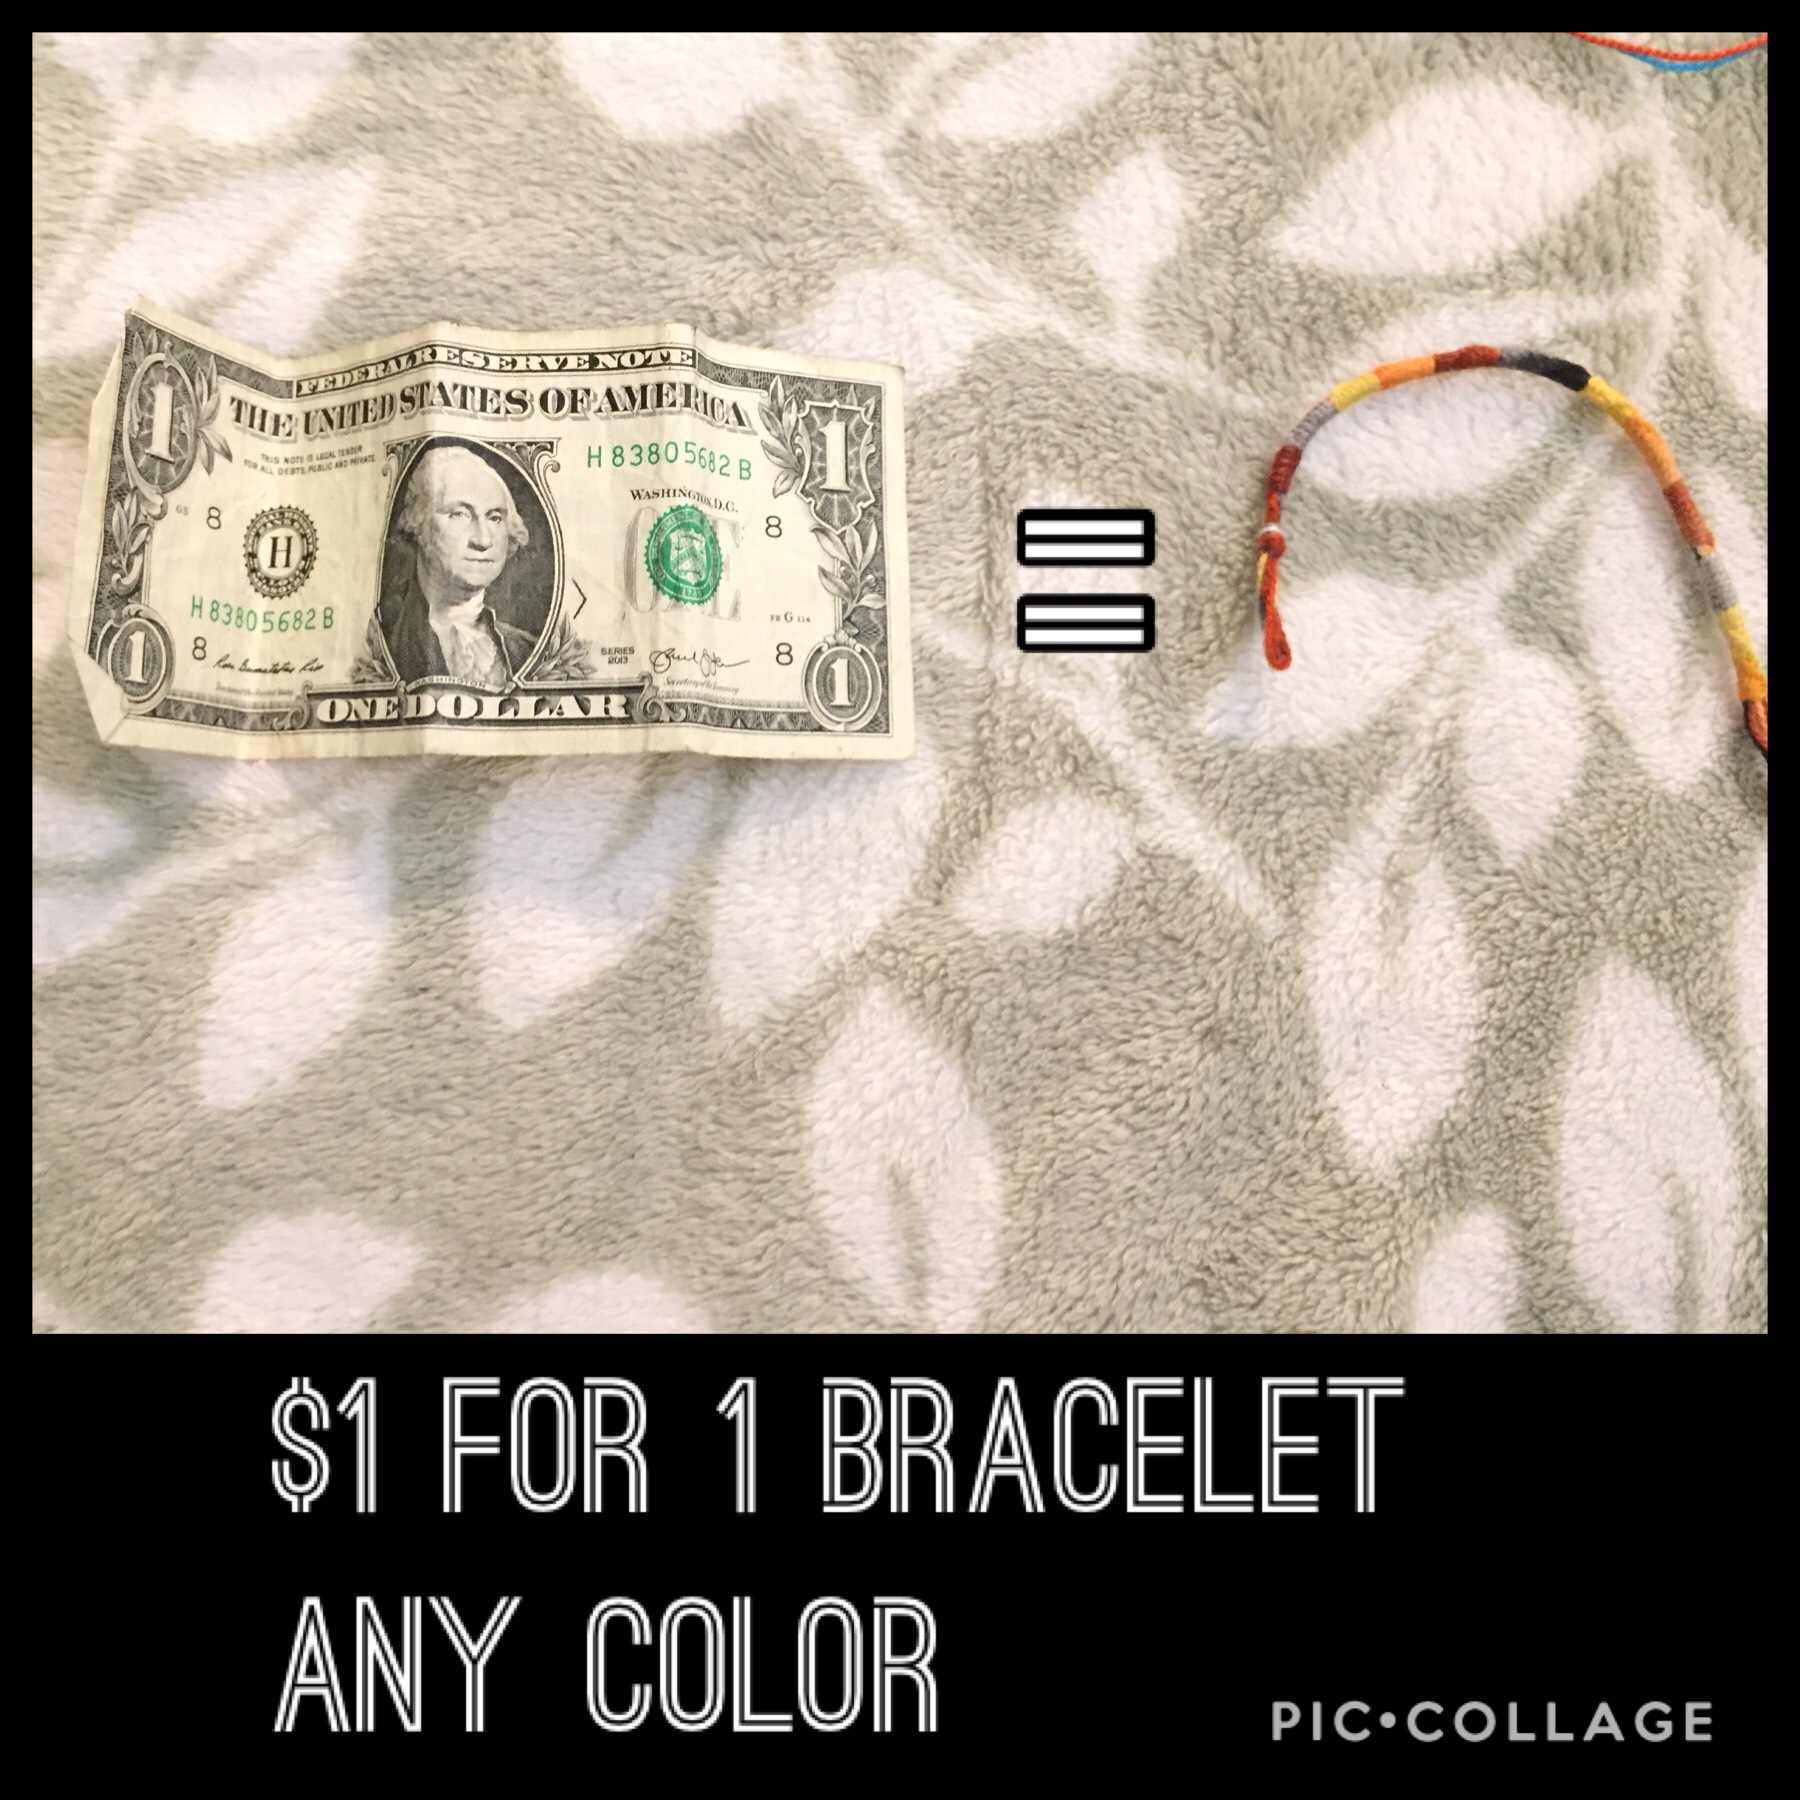 $1 for 1 bracelet that is any color!!!